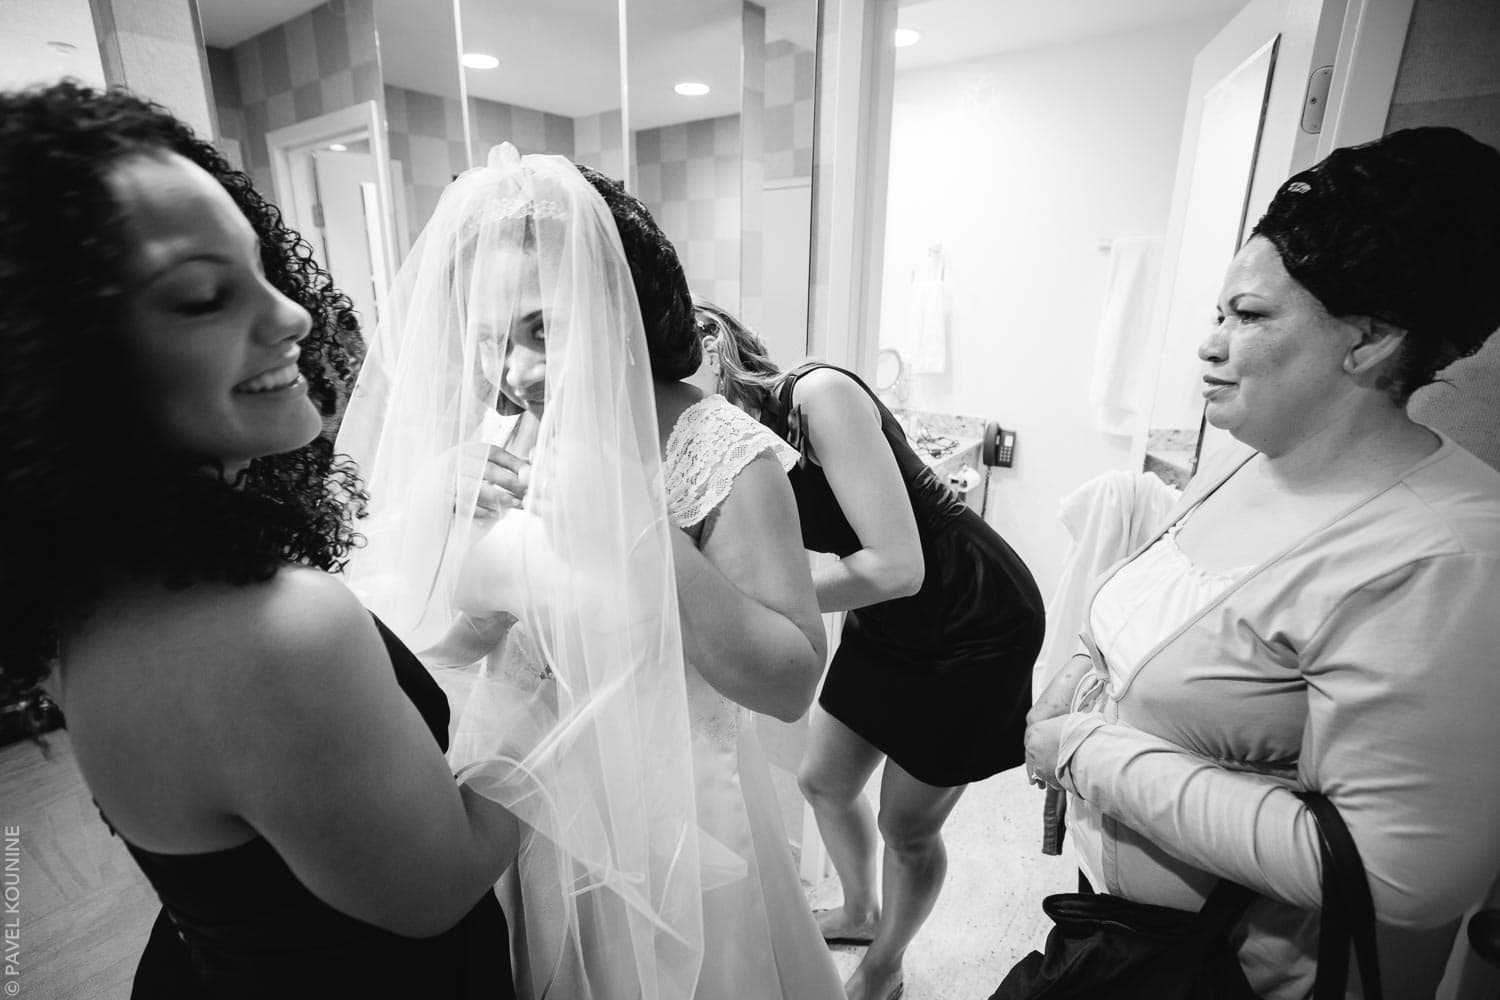 The bride is helped into her wedding dress in the hotel room.